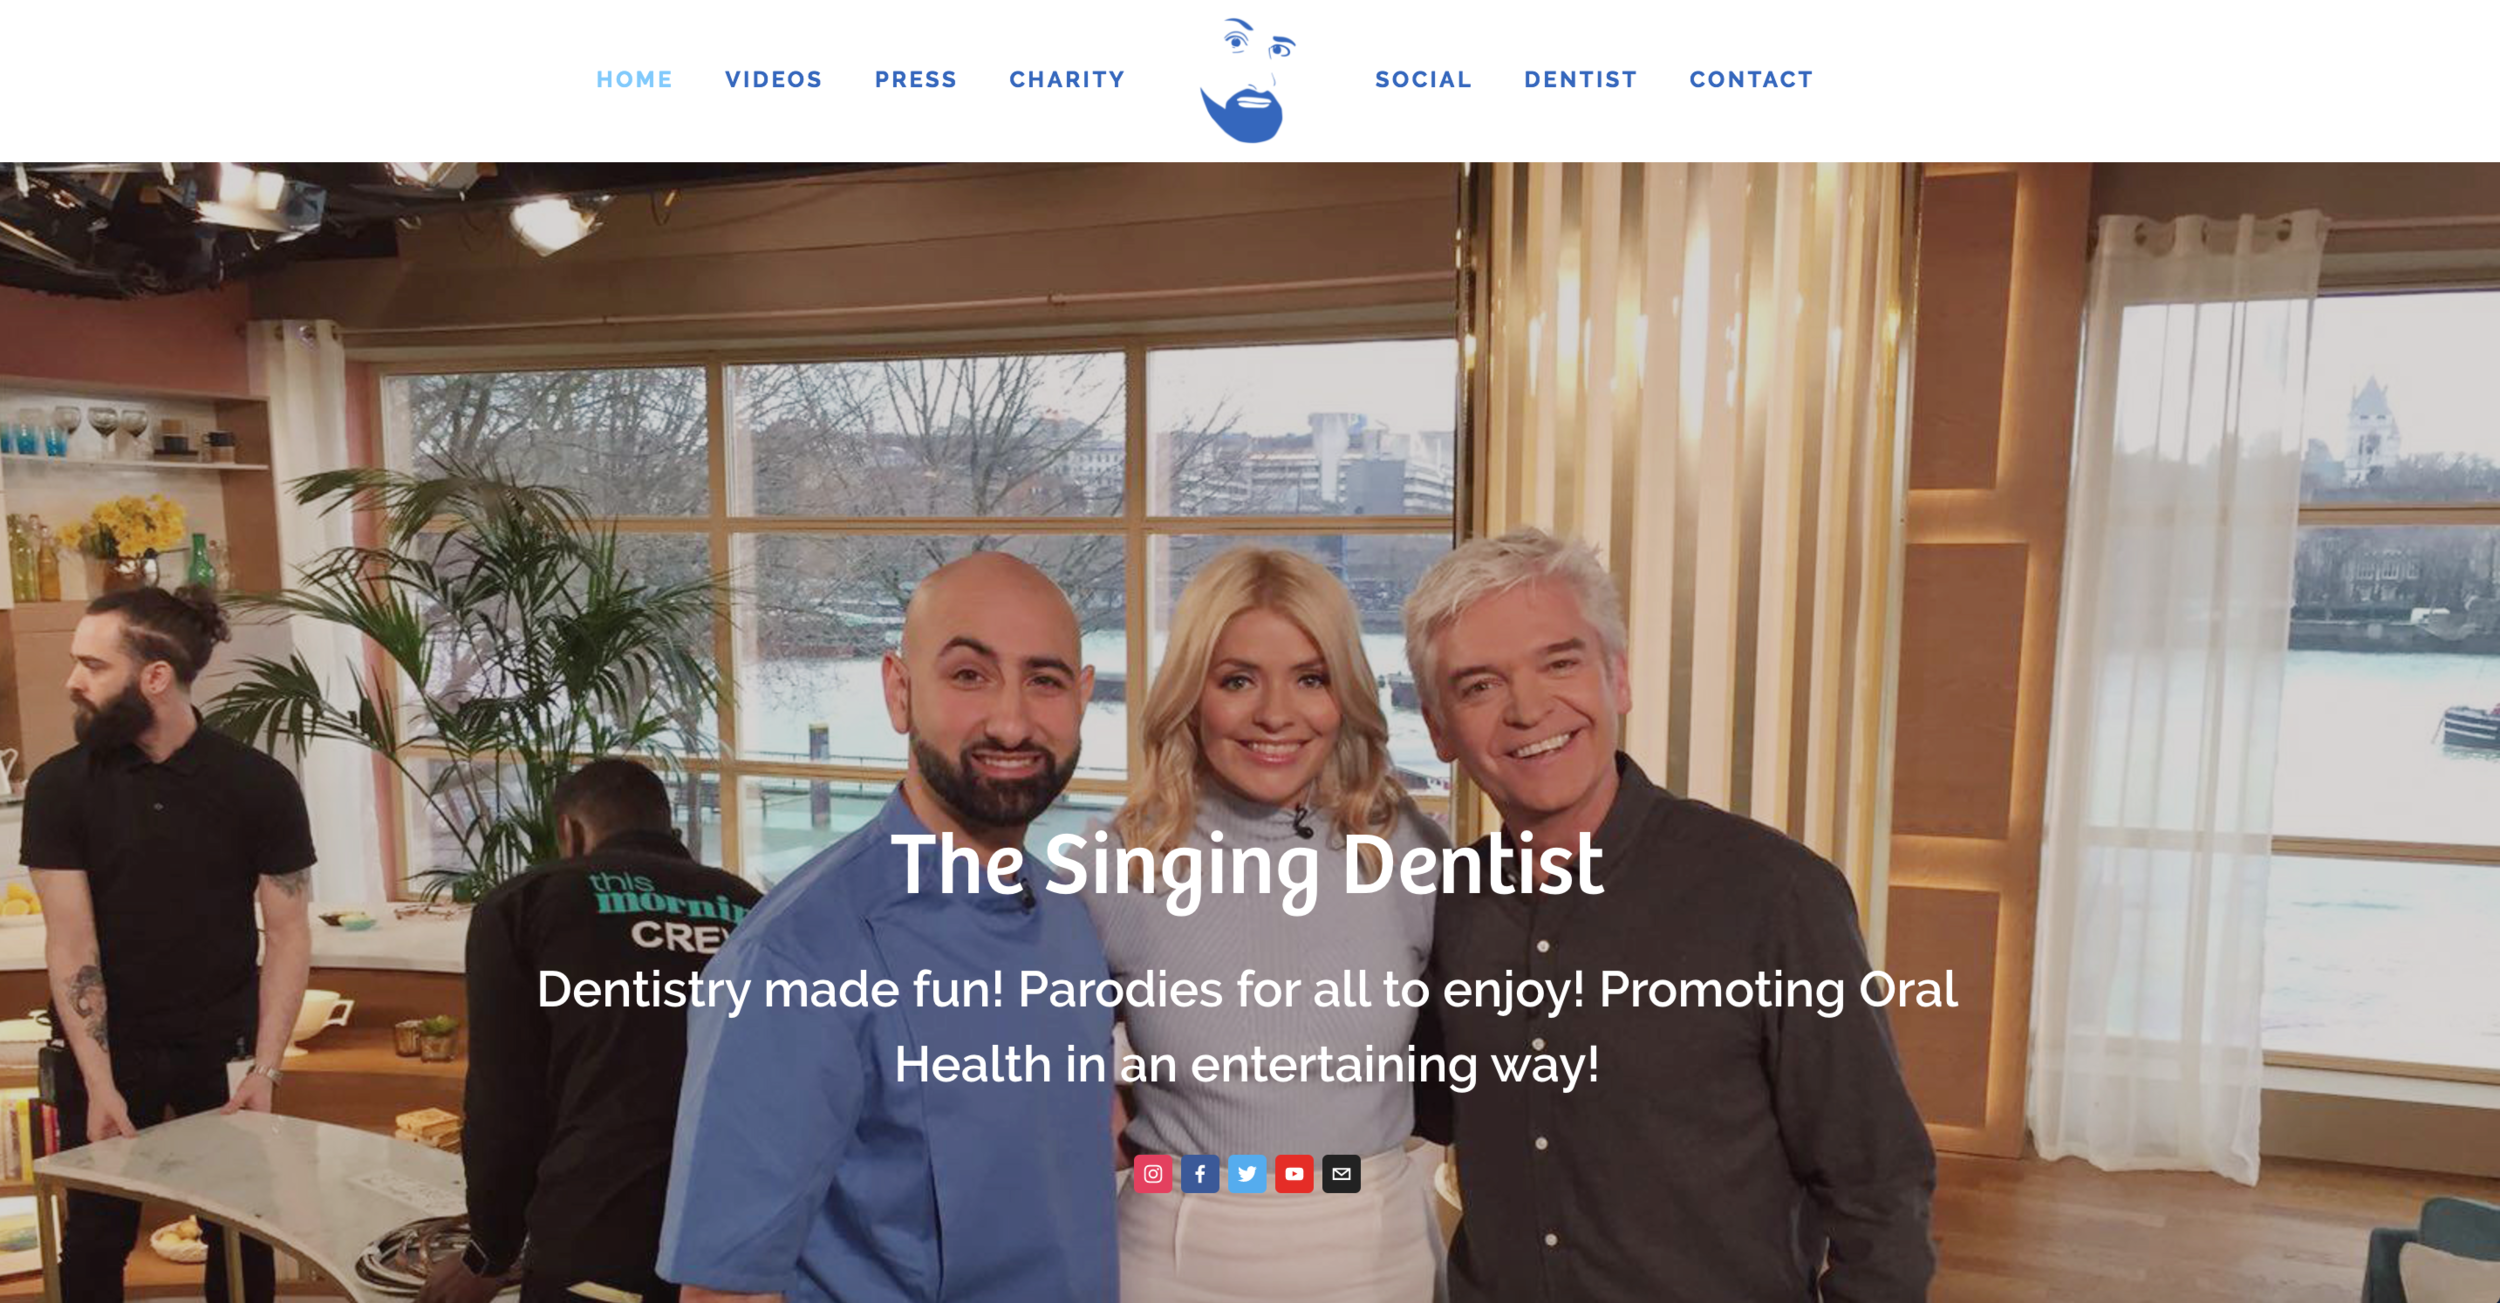 The Singing Dentist - Dr Milad Shadrooh of Chequers Dental, the most influential person in dentistry in 2017, appointed us to create his Singing Dentist website. Created in under 48 hours is proof that we can deliver a very quick turn around when required!www.singingdentist.com